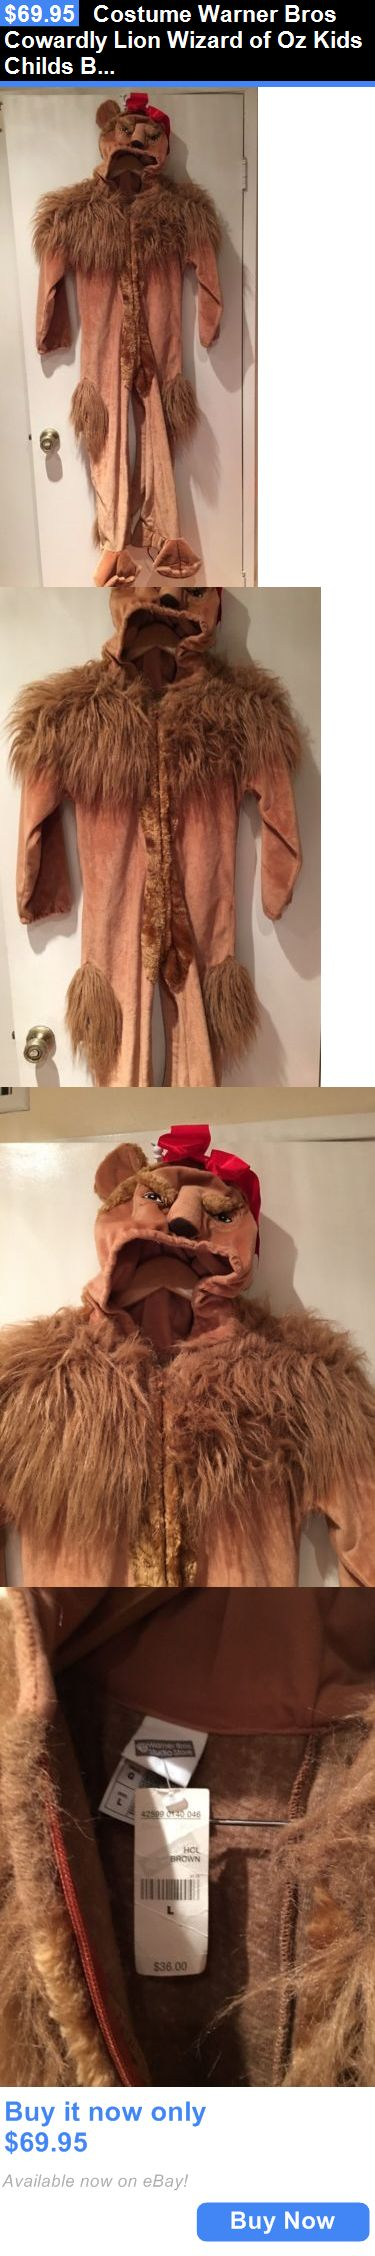 best ideas about cowardly lion wizard of oz lion halloween costumes kids costume warner bros cowardly lion wizard of oz kids childs boy girl